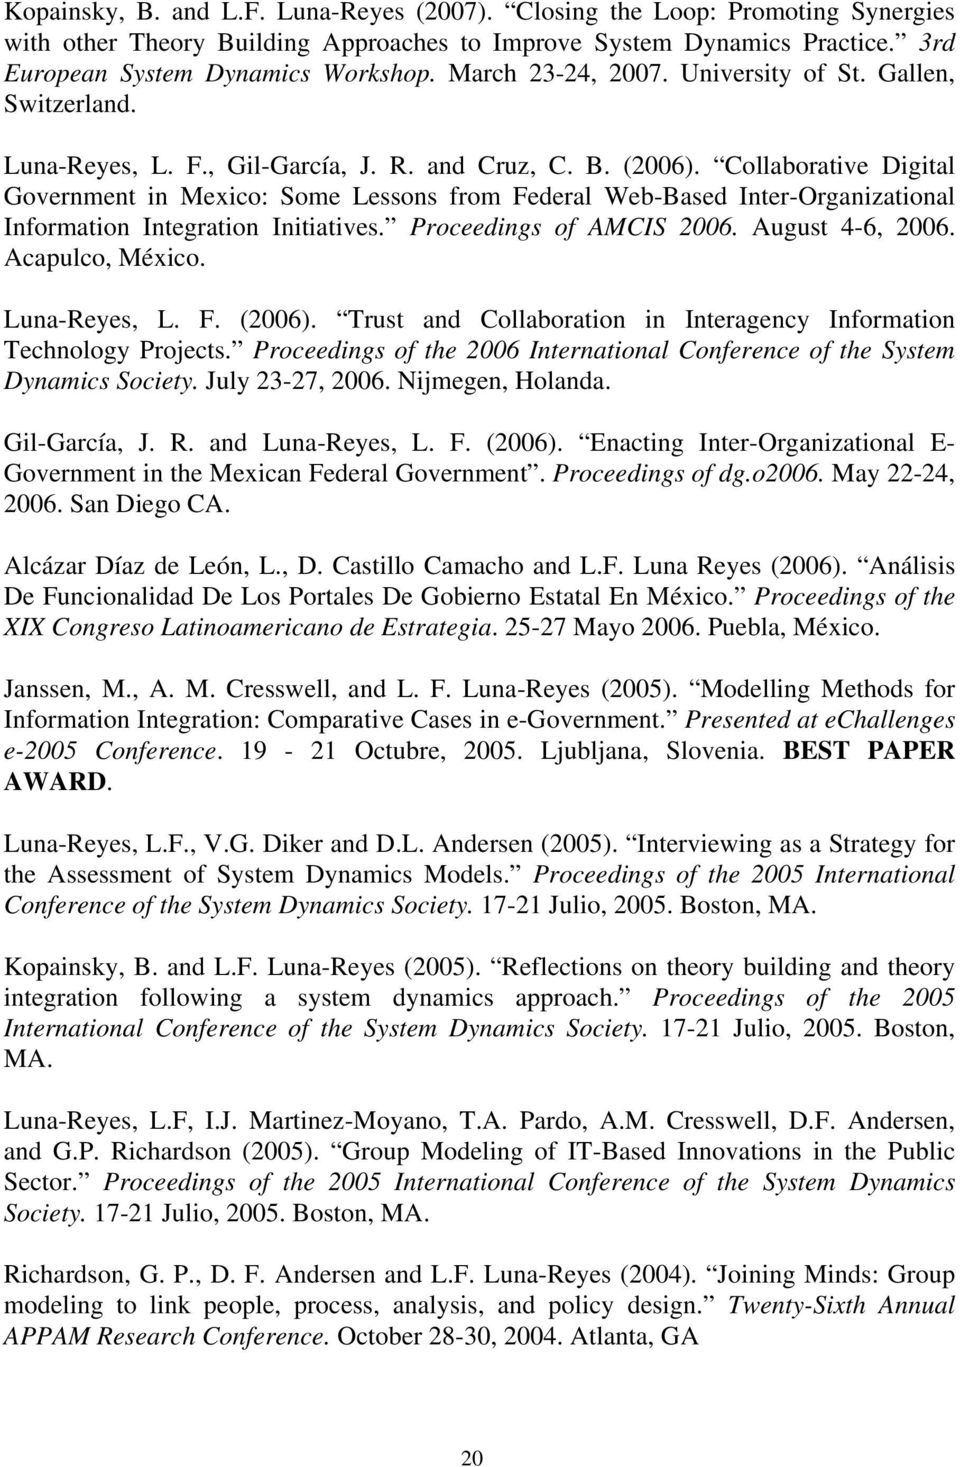 Collaborative Digital Government in Mexico: Some Lessons from Federal Web-Based Inter-Organizational Information Integration Initiatives. Proceedings of AMCIS 2006. August 4-6, 2006. Acapulco, México.